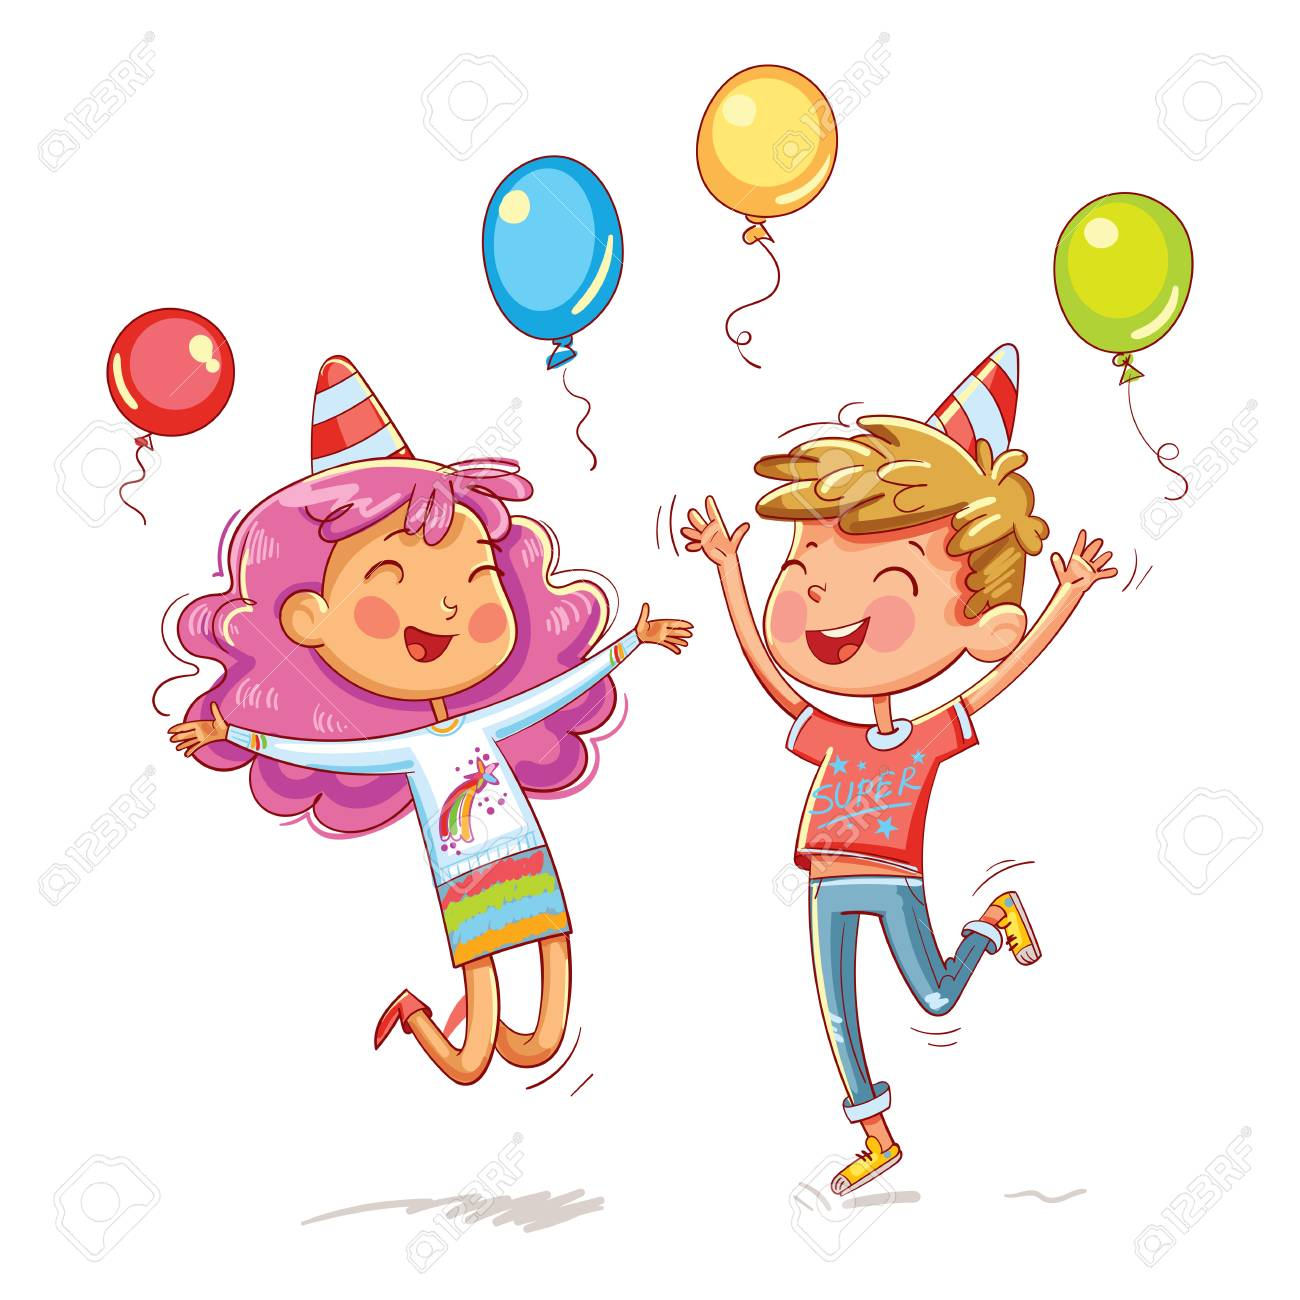 A Boy And A Girl Jumping Fun At A Children S Birthday Party